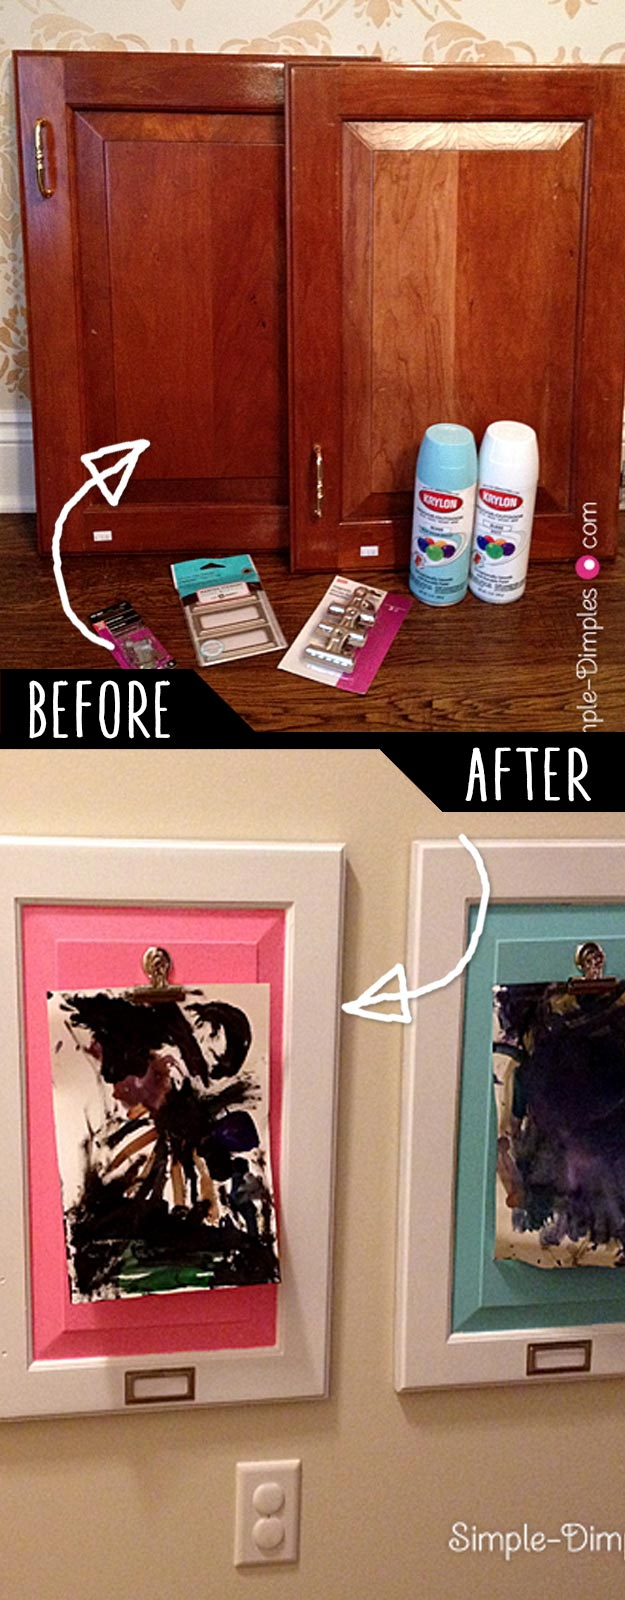 Cool DIY Ideas | Artwork Display Boards For Children Using Cabinet Doors